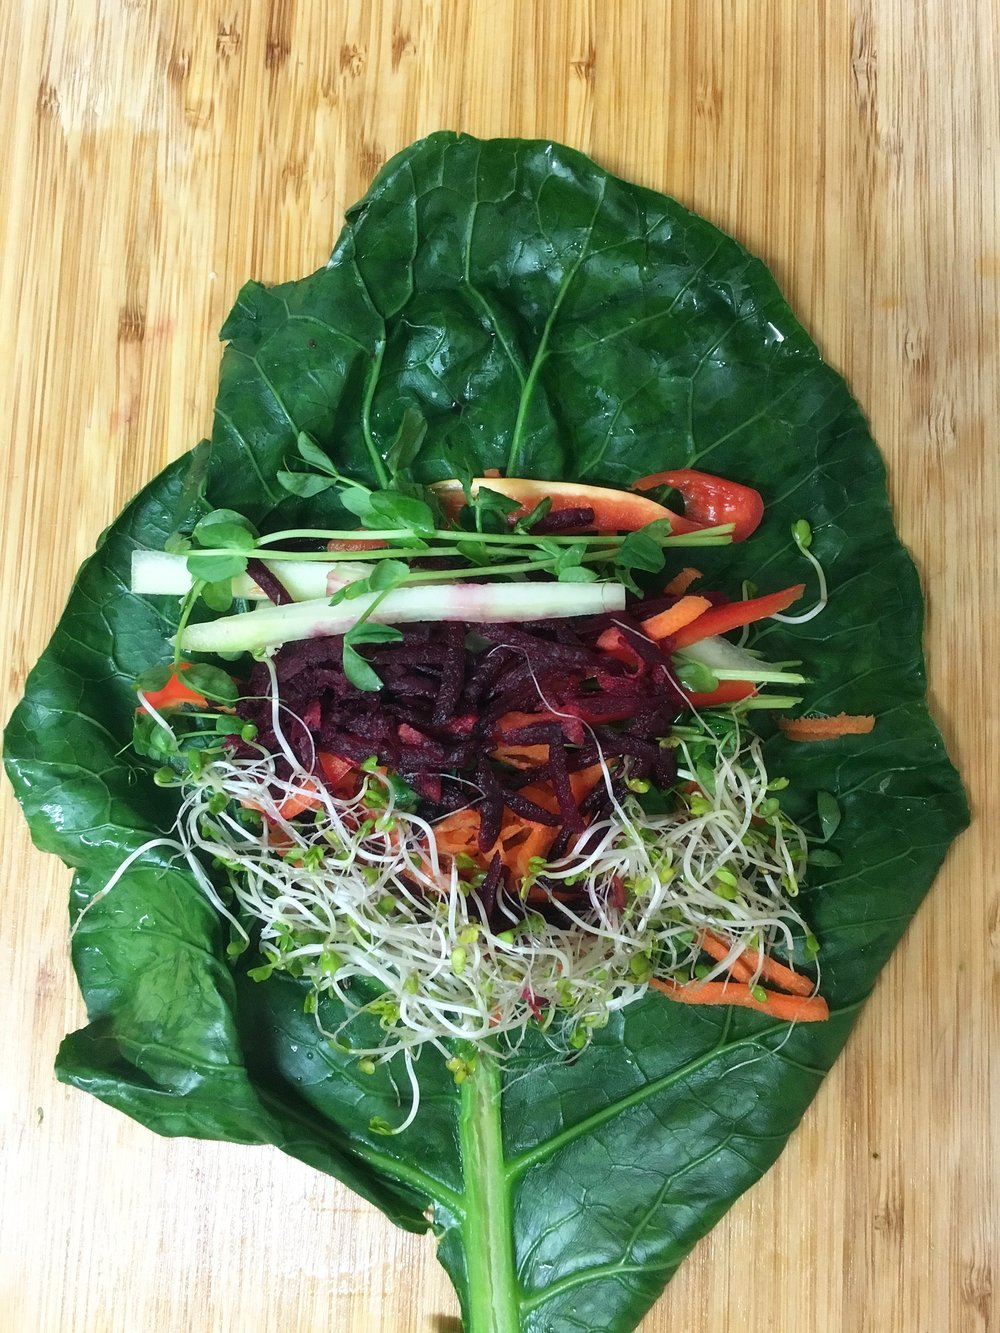 Fold the stem over veggie pile, tuck in the sides, roll tightly, repeat!